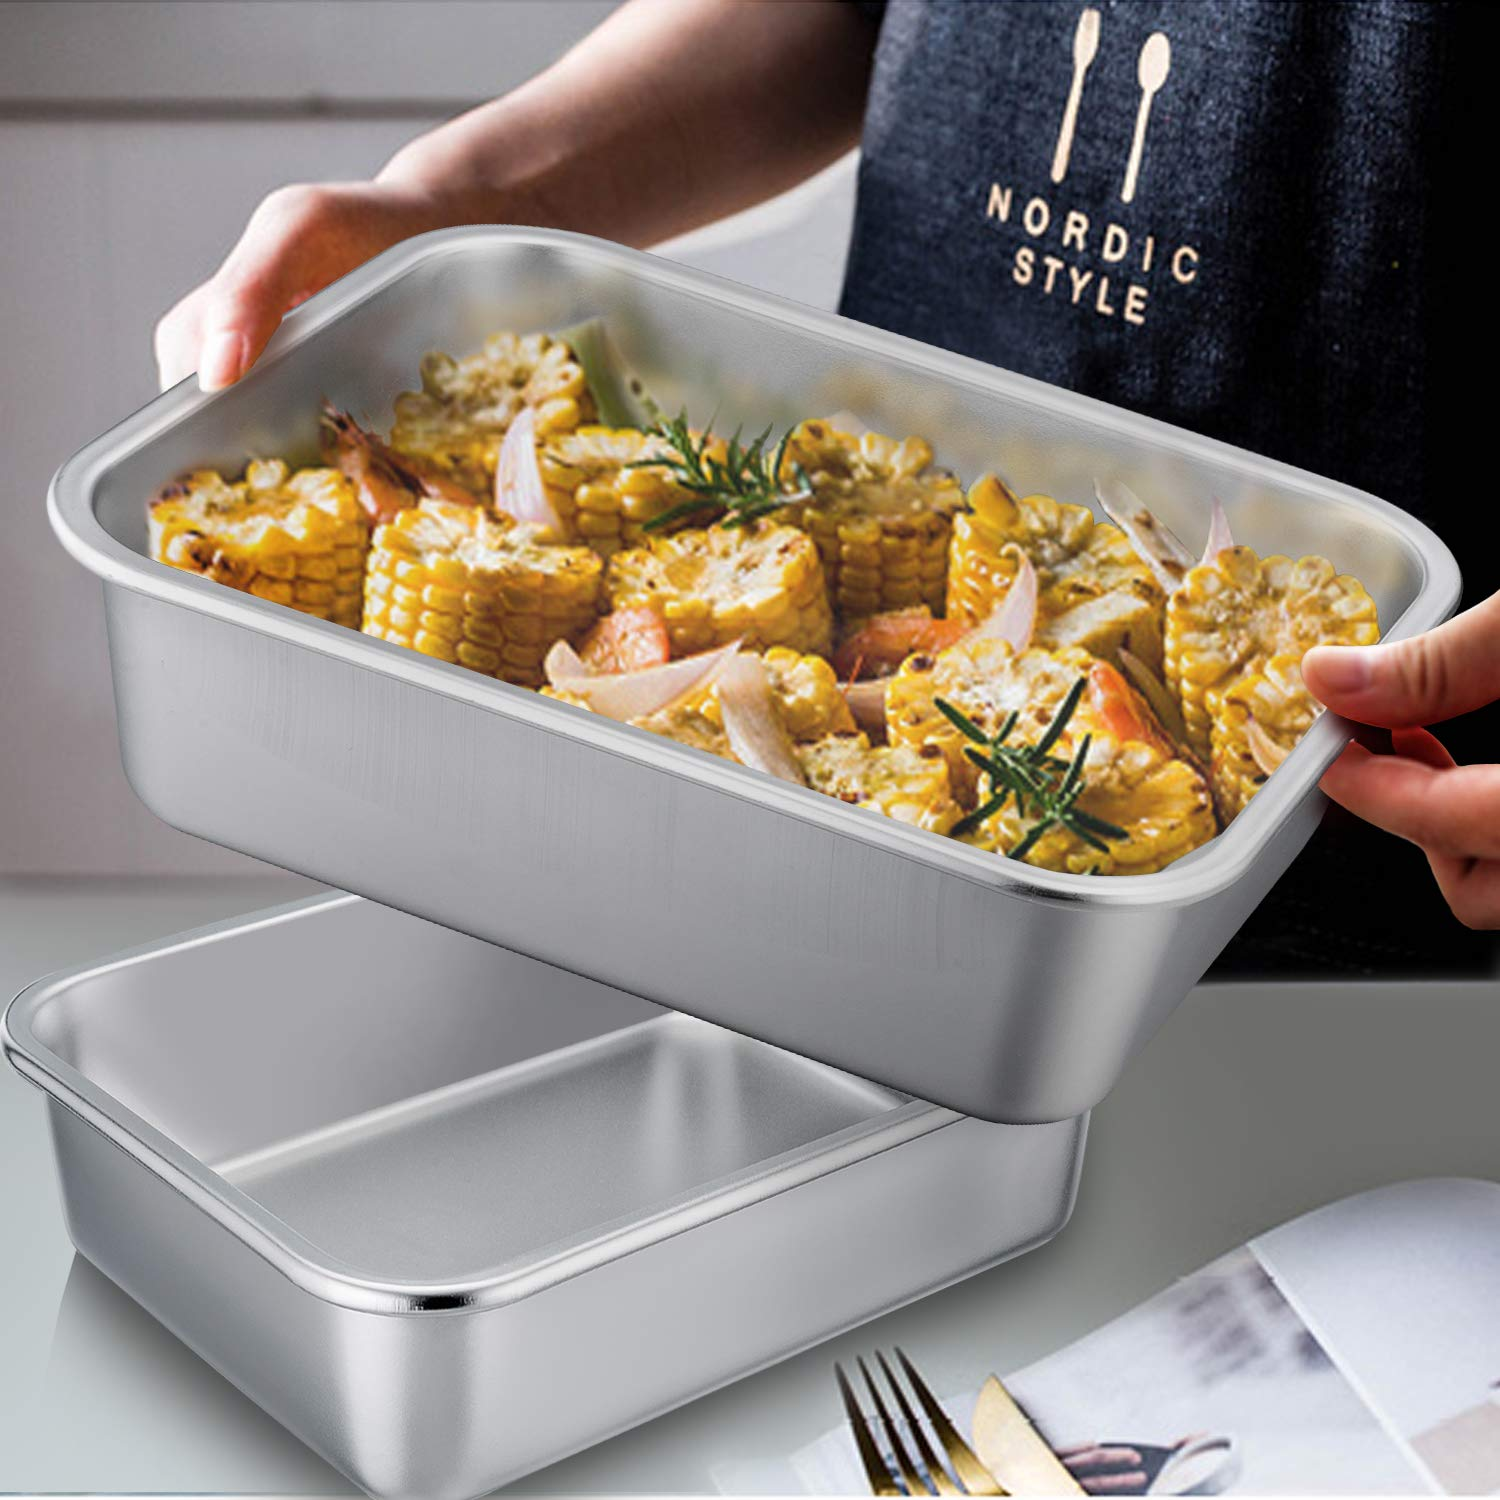 TeamFar Lasagna Pan Set of 2, Brownie Pan Rectangle Cake Pan Stainless Steel, Heavy Duty & Healthy, Easy Clean & Dishwasher safe, Brushed Surface-13 & 10 inch by TeamFar (Image #6)